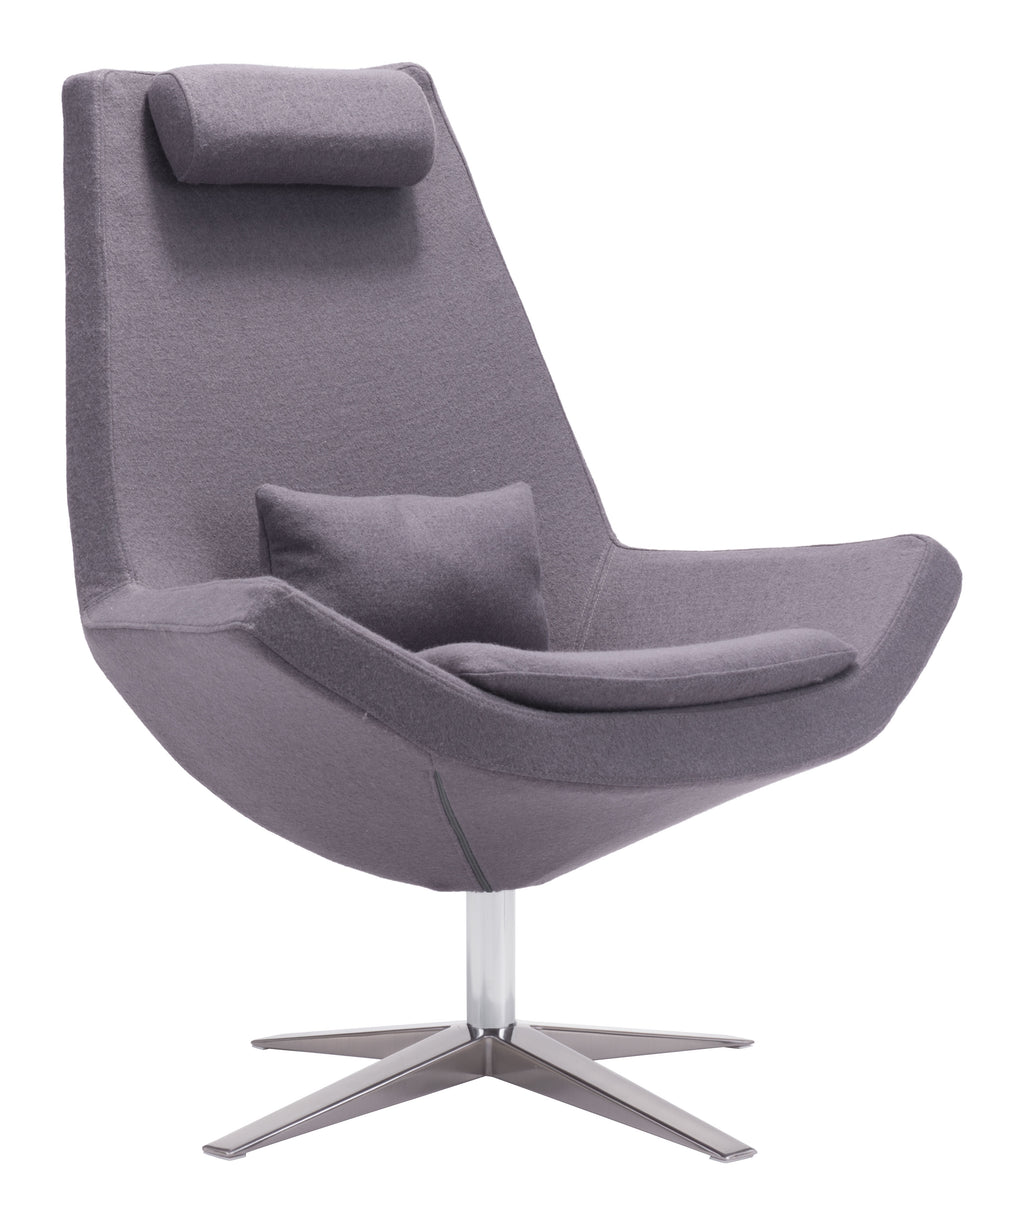 Bruges Occasional Chair (Charcoal Gray)